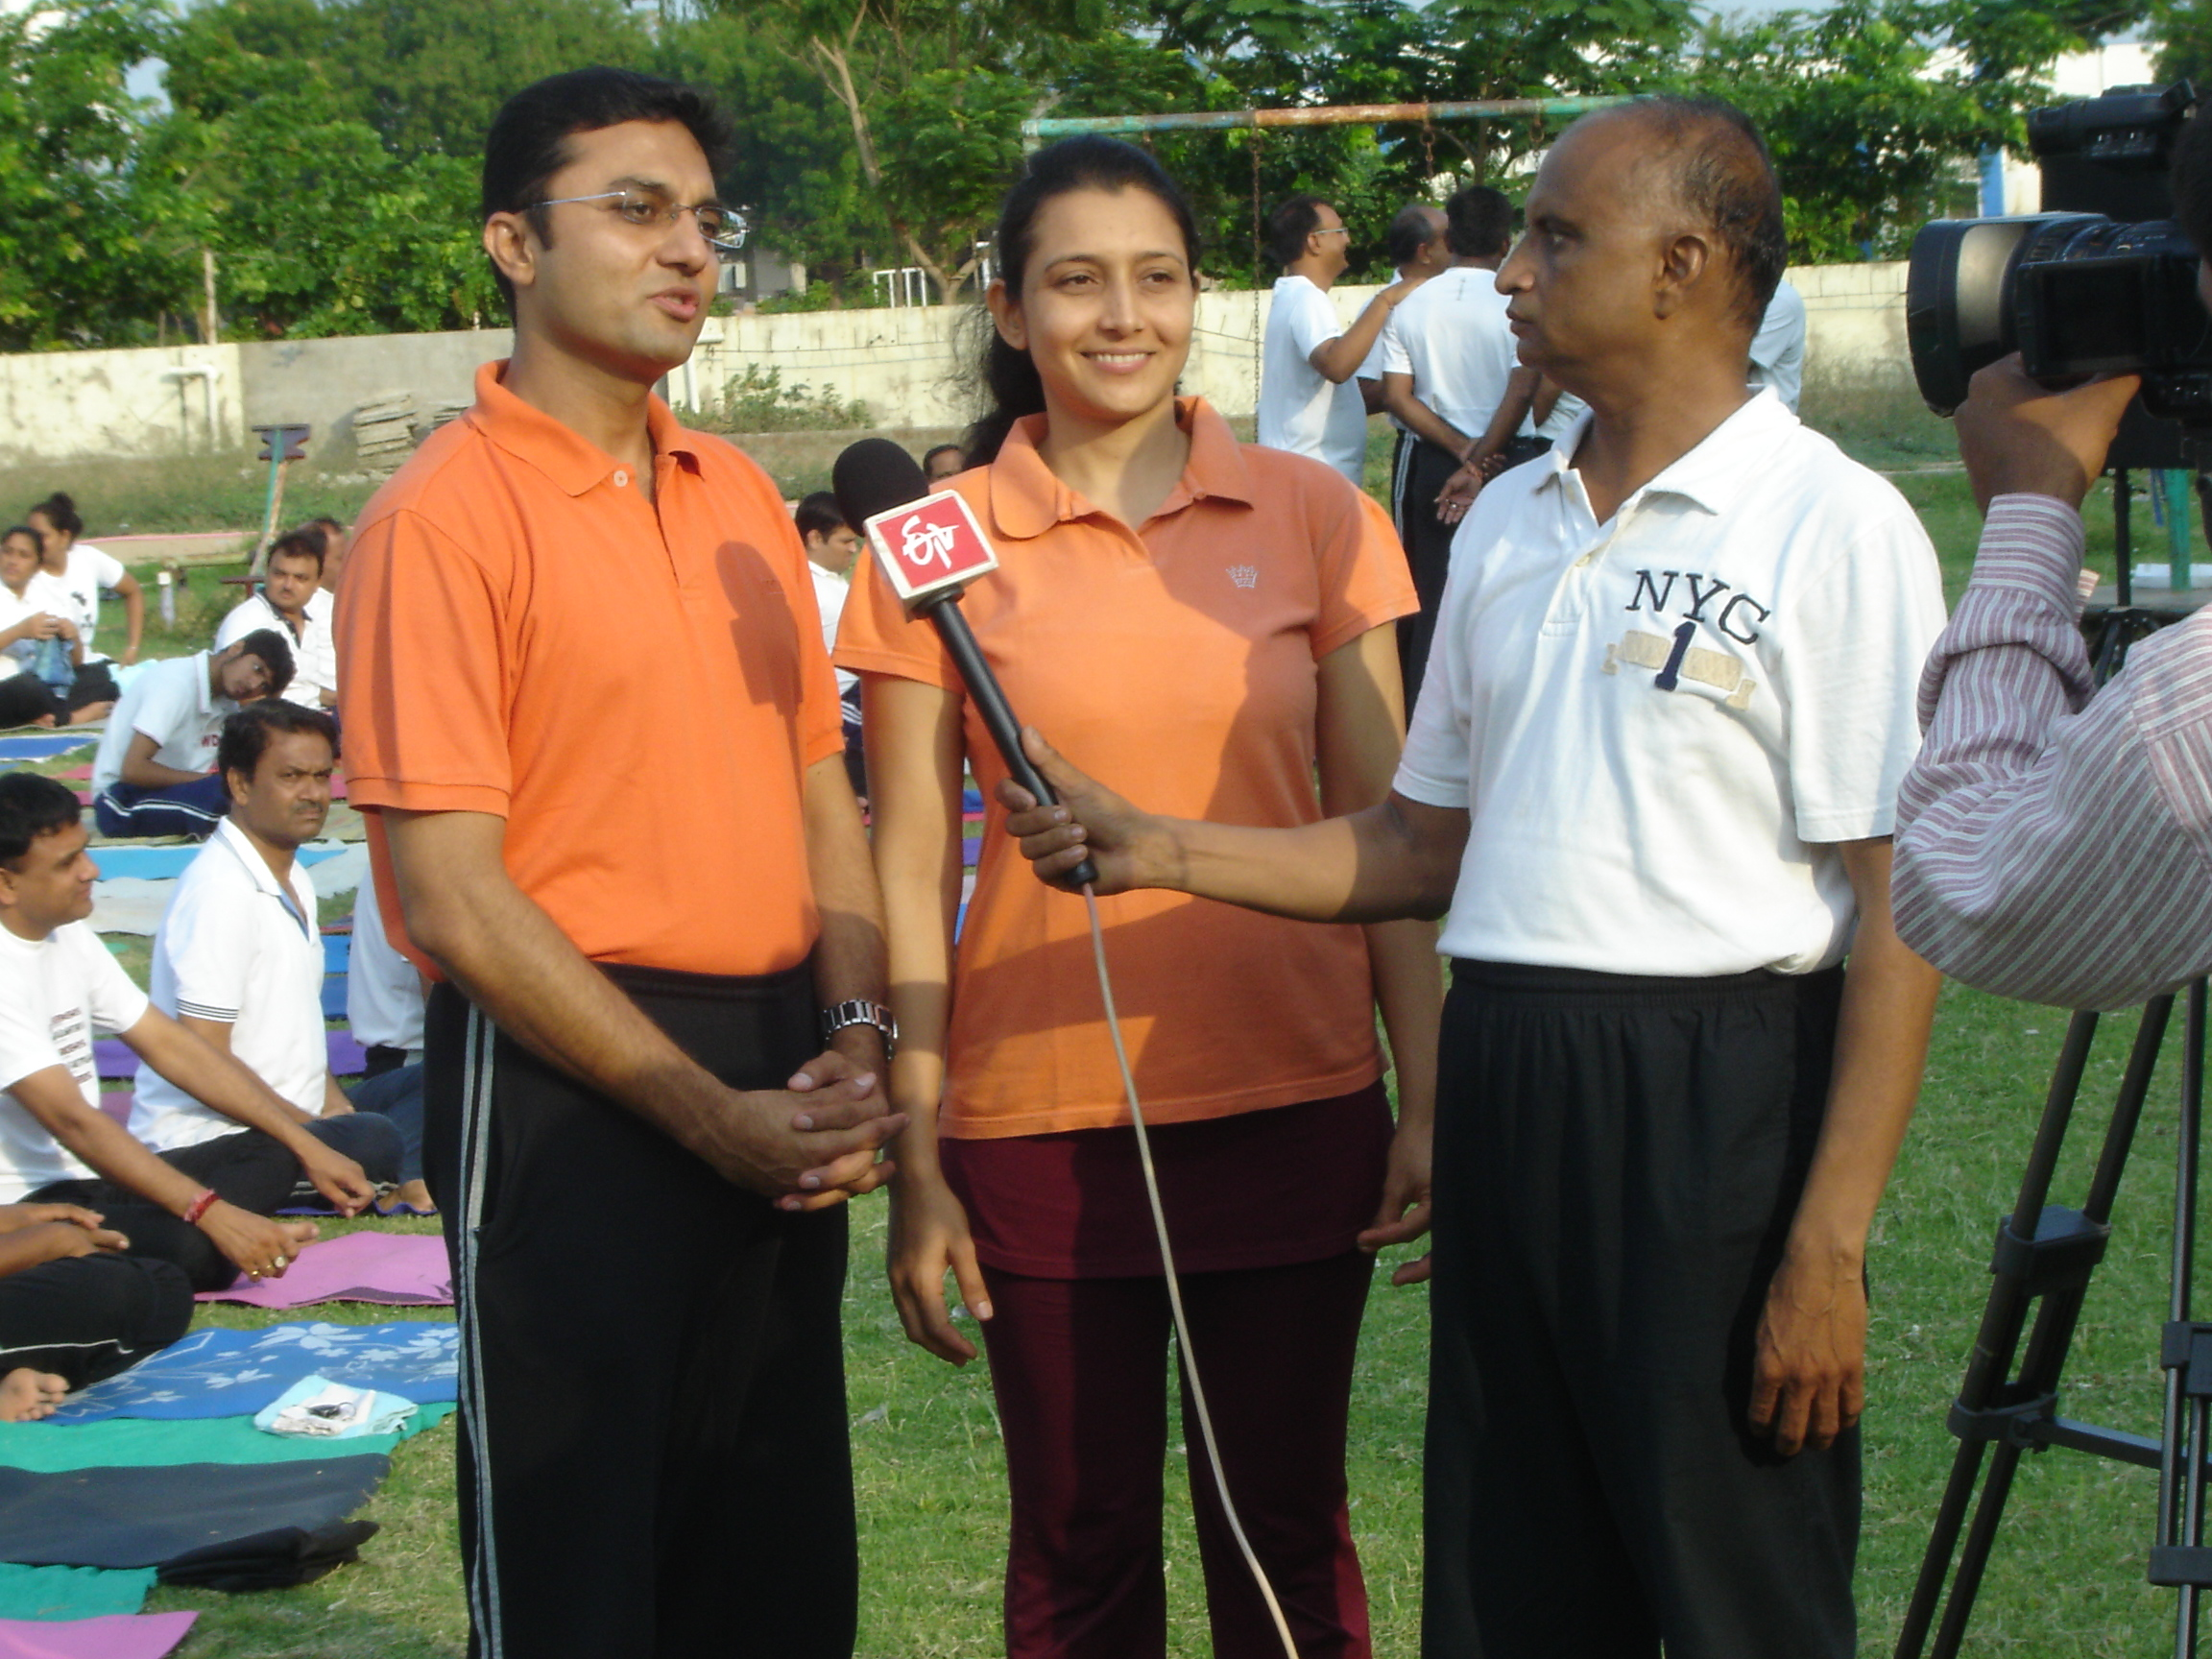 Media is taking notice of our wellness activities for community, 2015